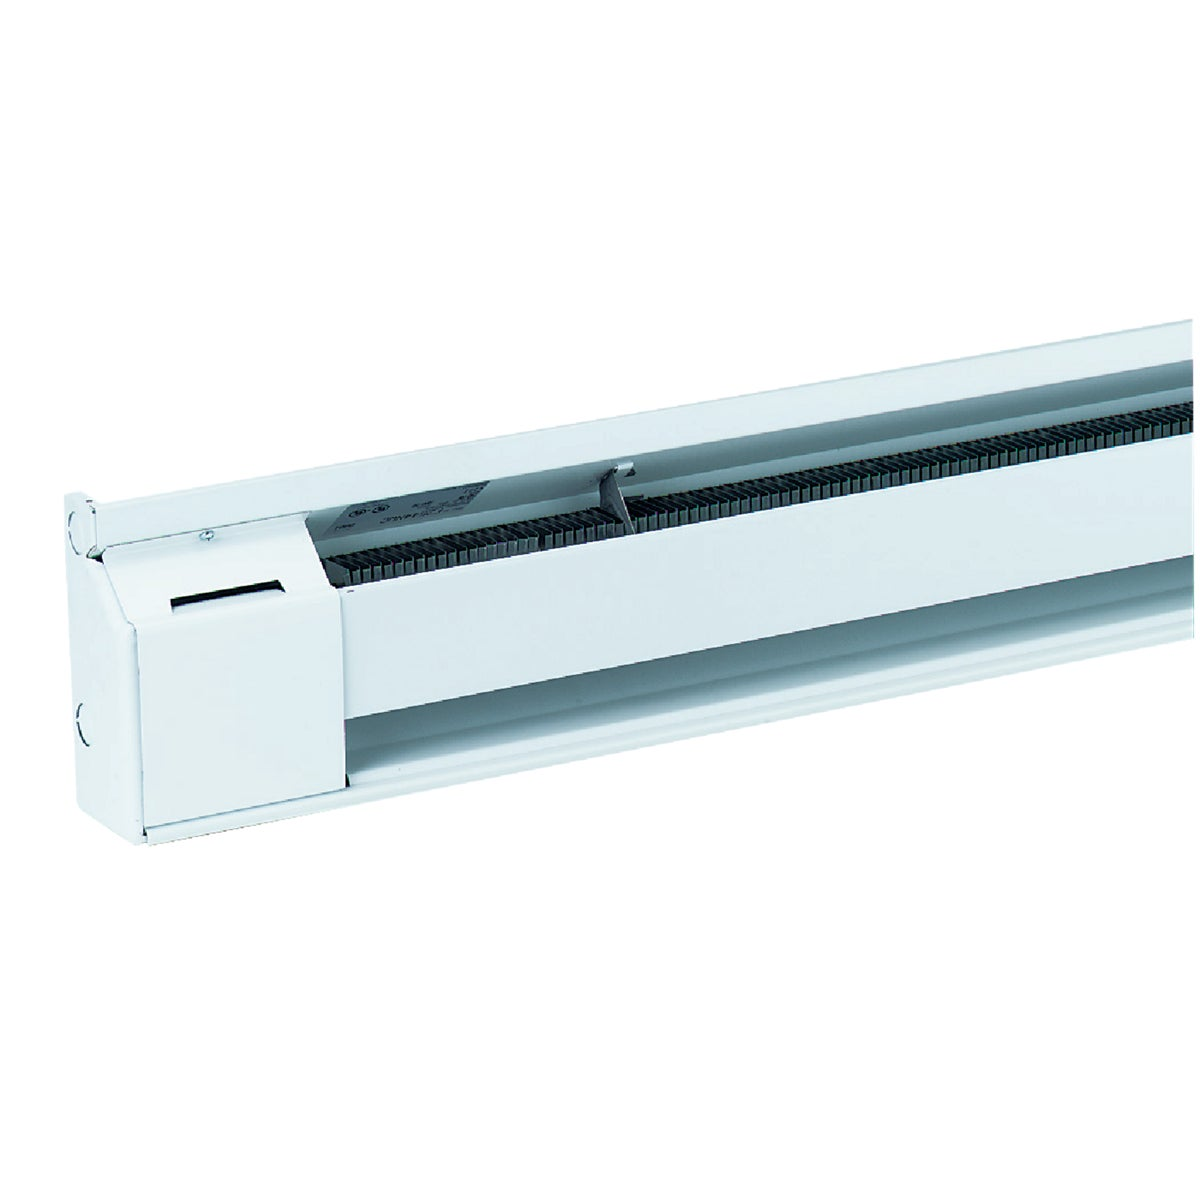 4' BASEBOARD HEATER - F2544 by Fahrenheat Marley